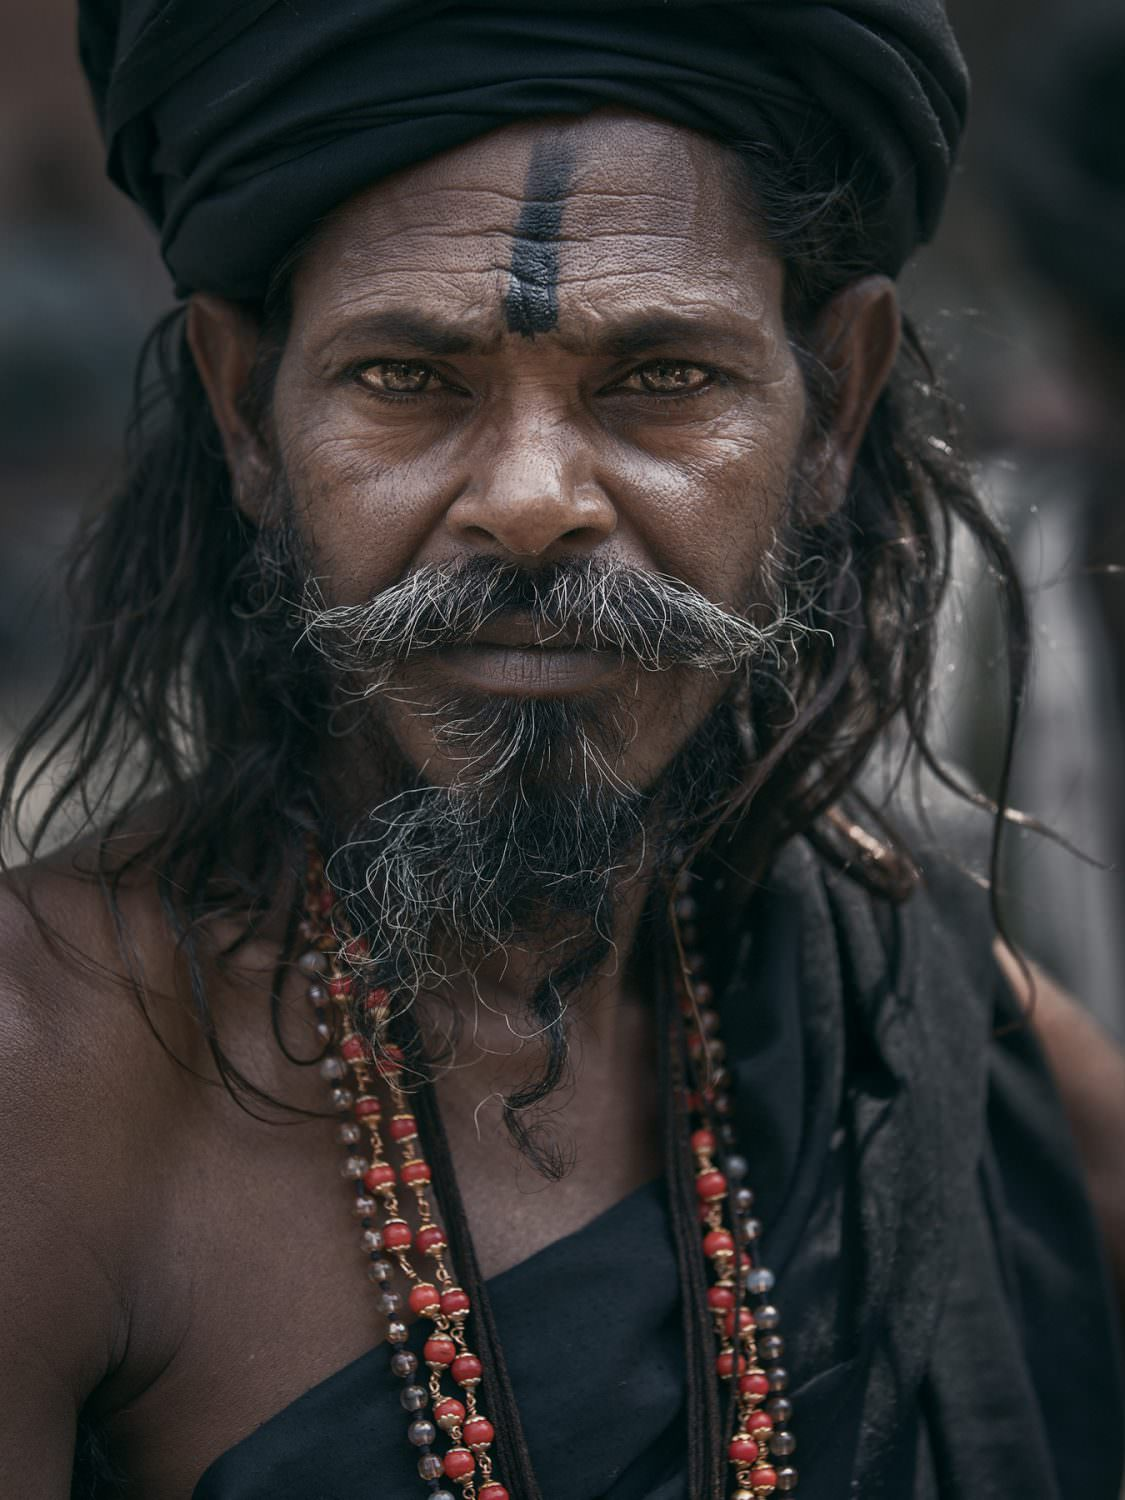 """return a look - from the portrait series """"The holy men of Varanasi""""© by Gerry Pacher"""